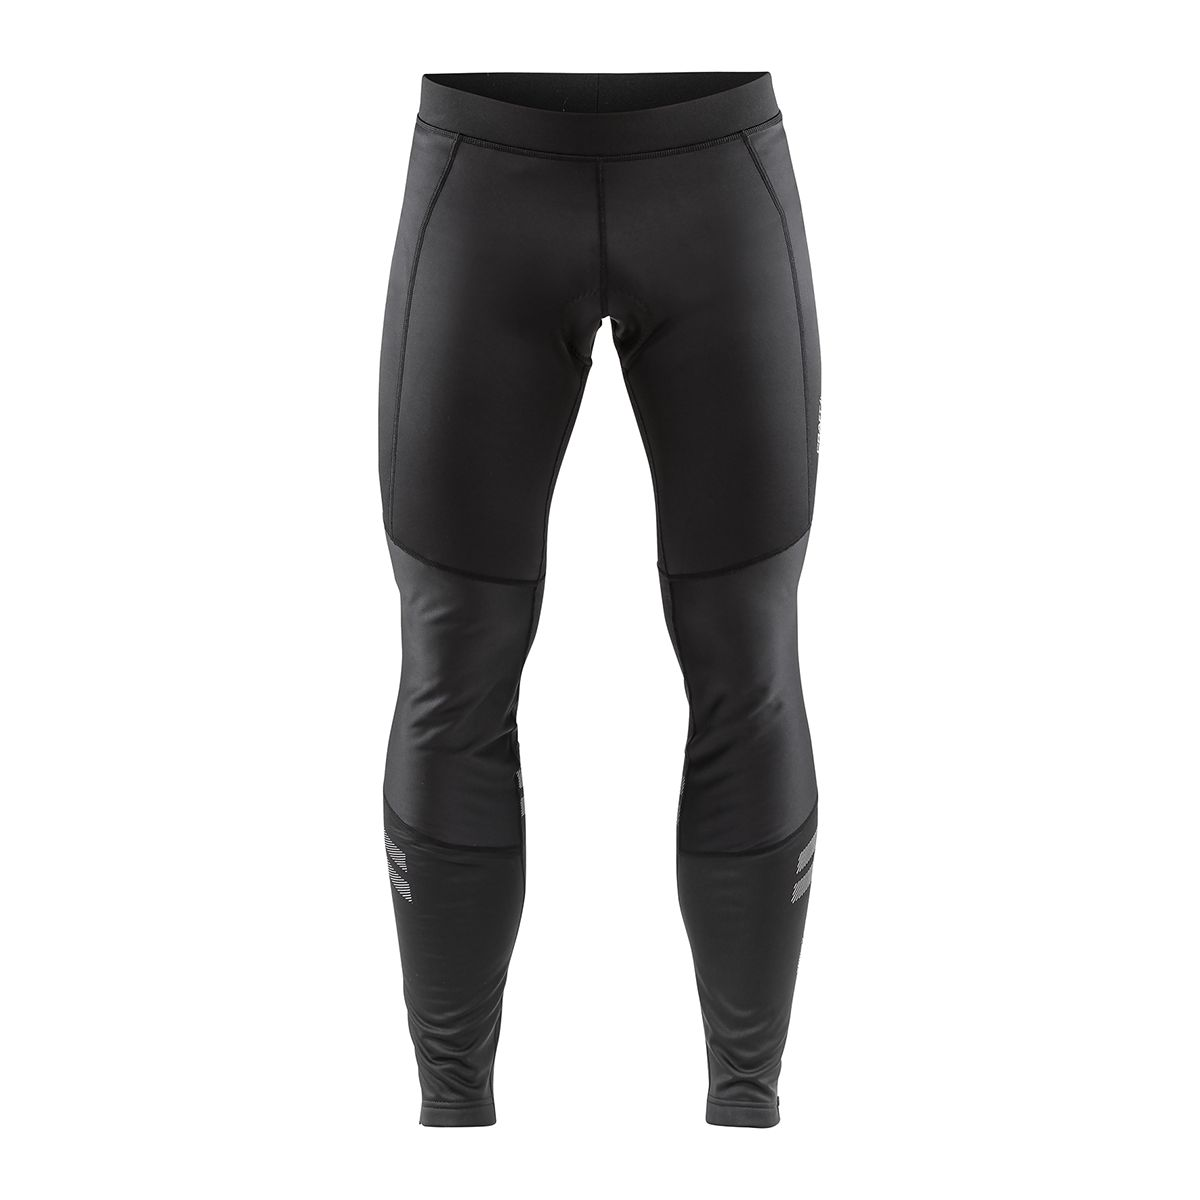 IDEAL WIND TIGHTS M for men